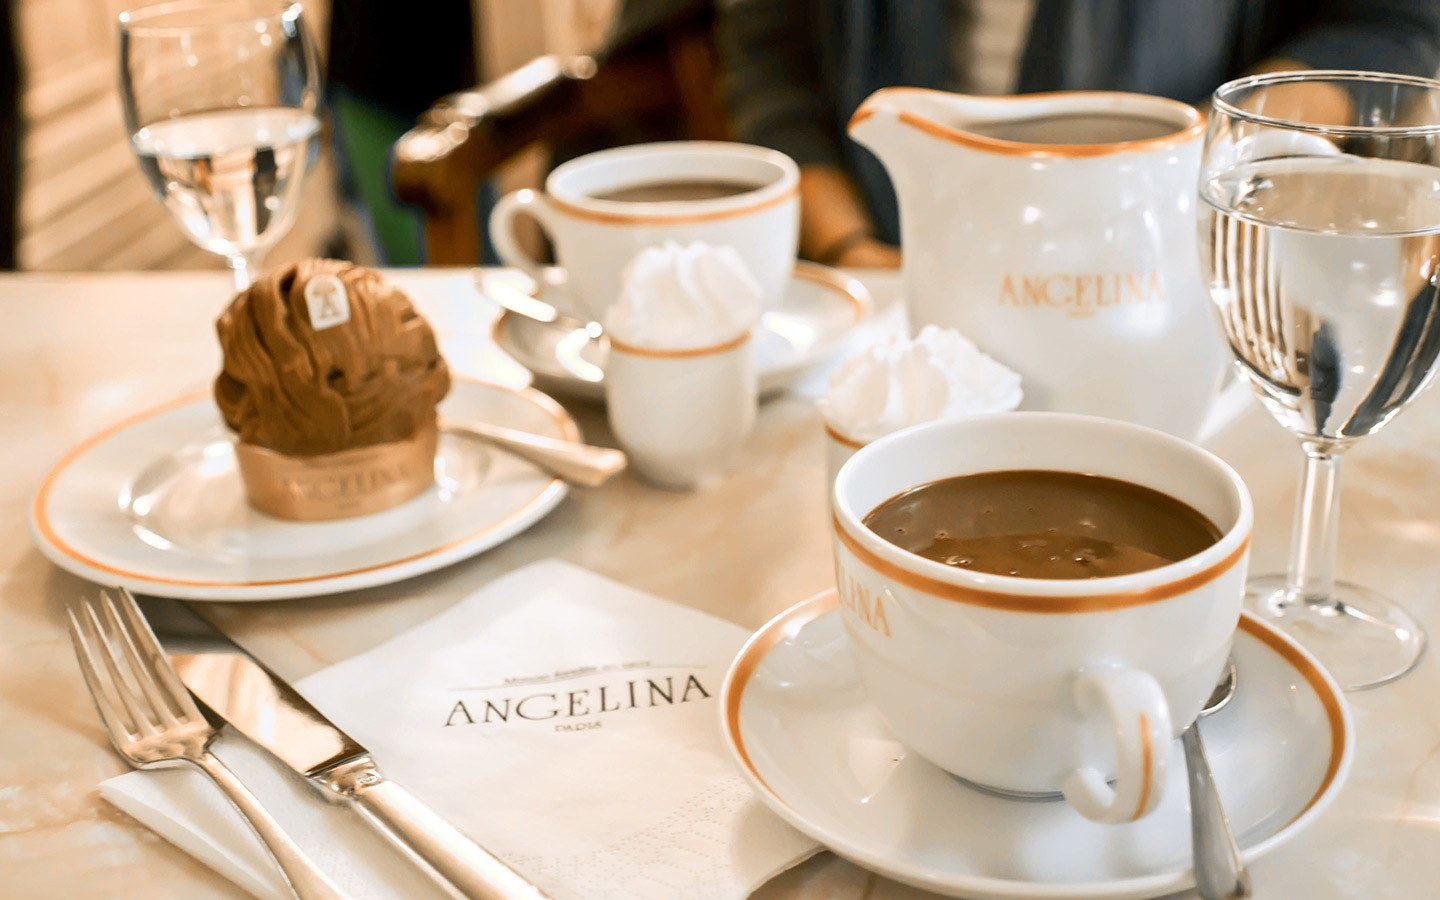 Delicious hot chocolate at Angelina in Paris